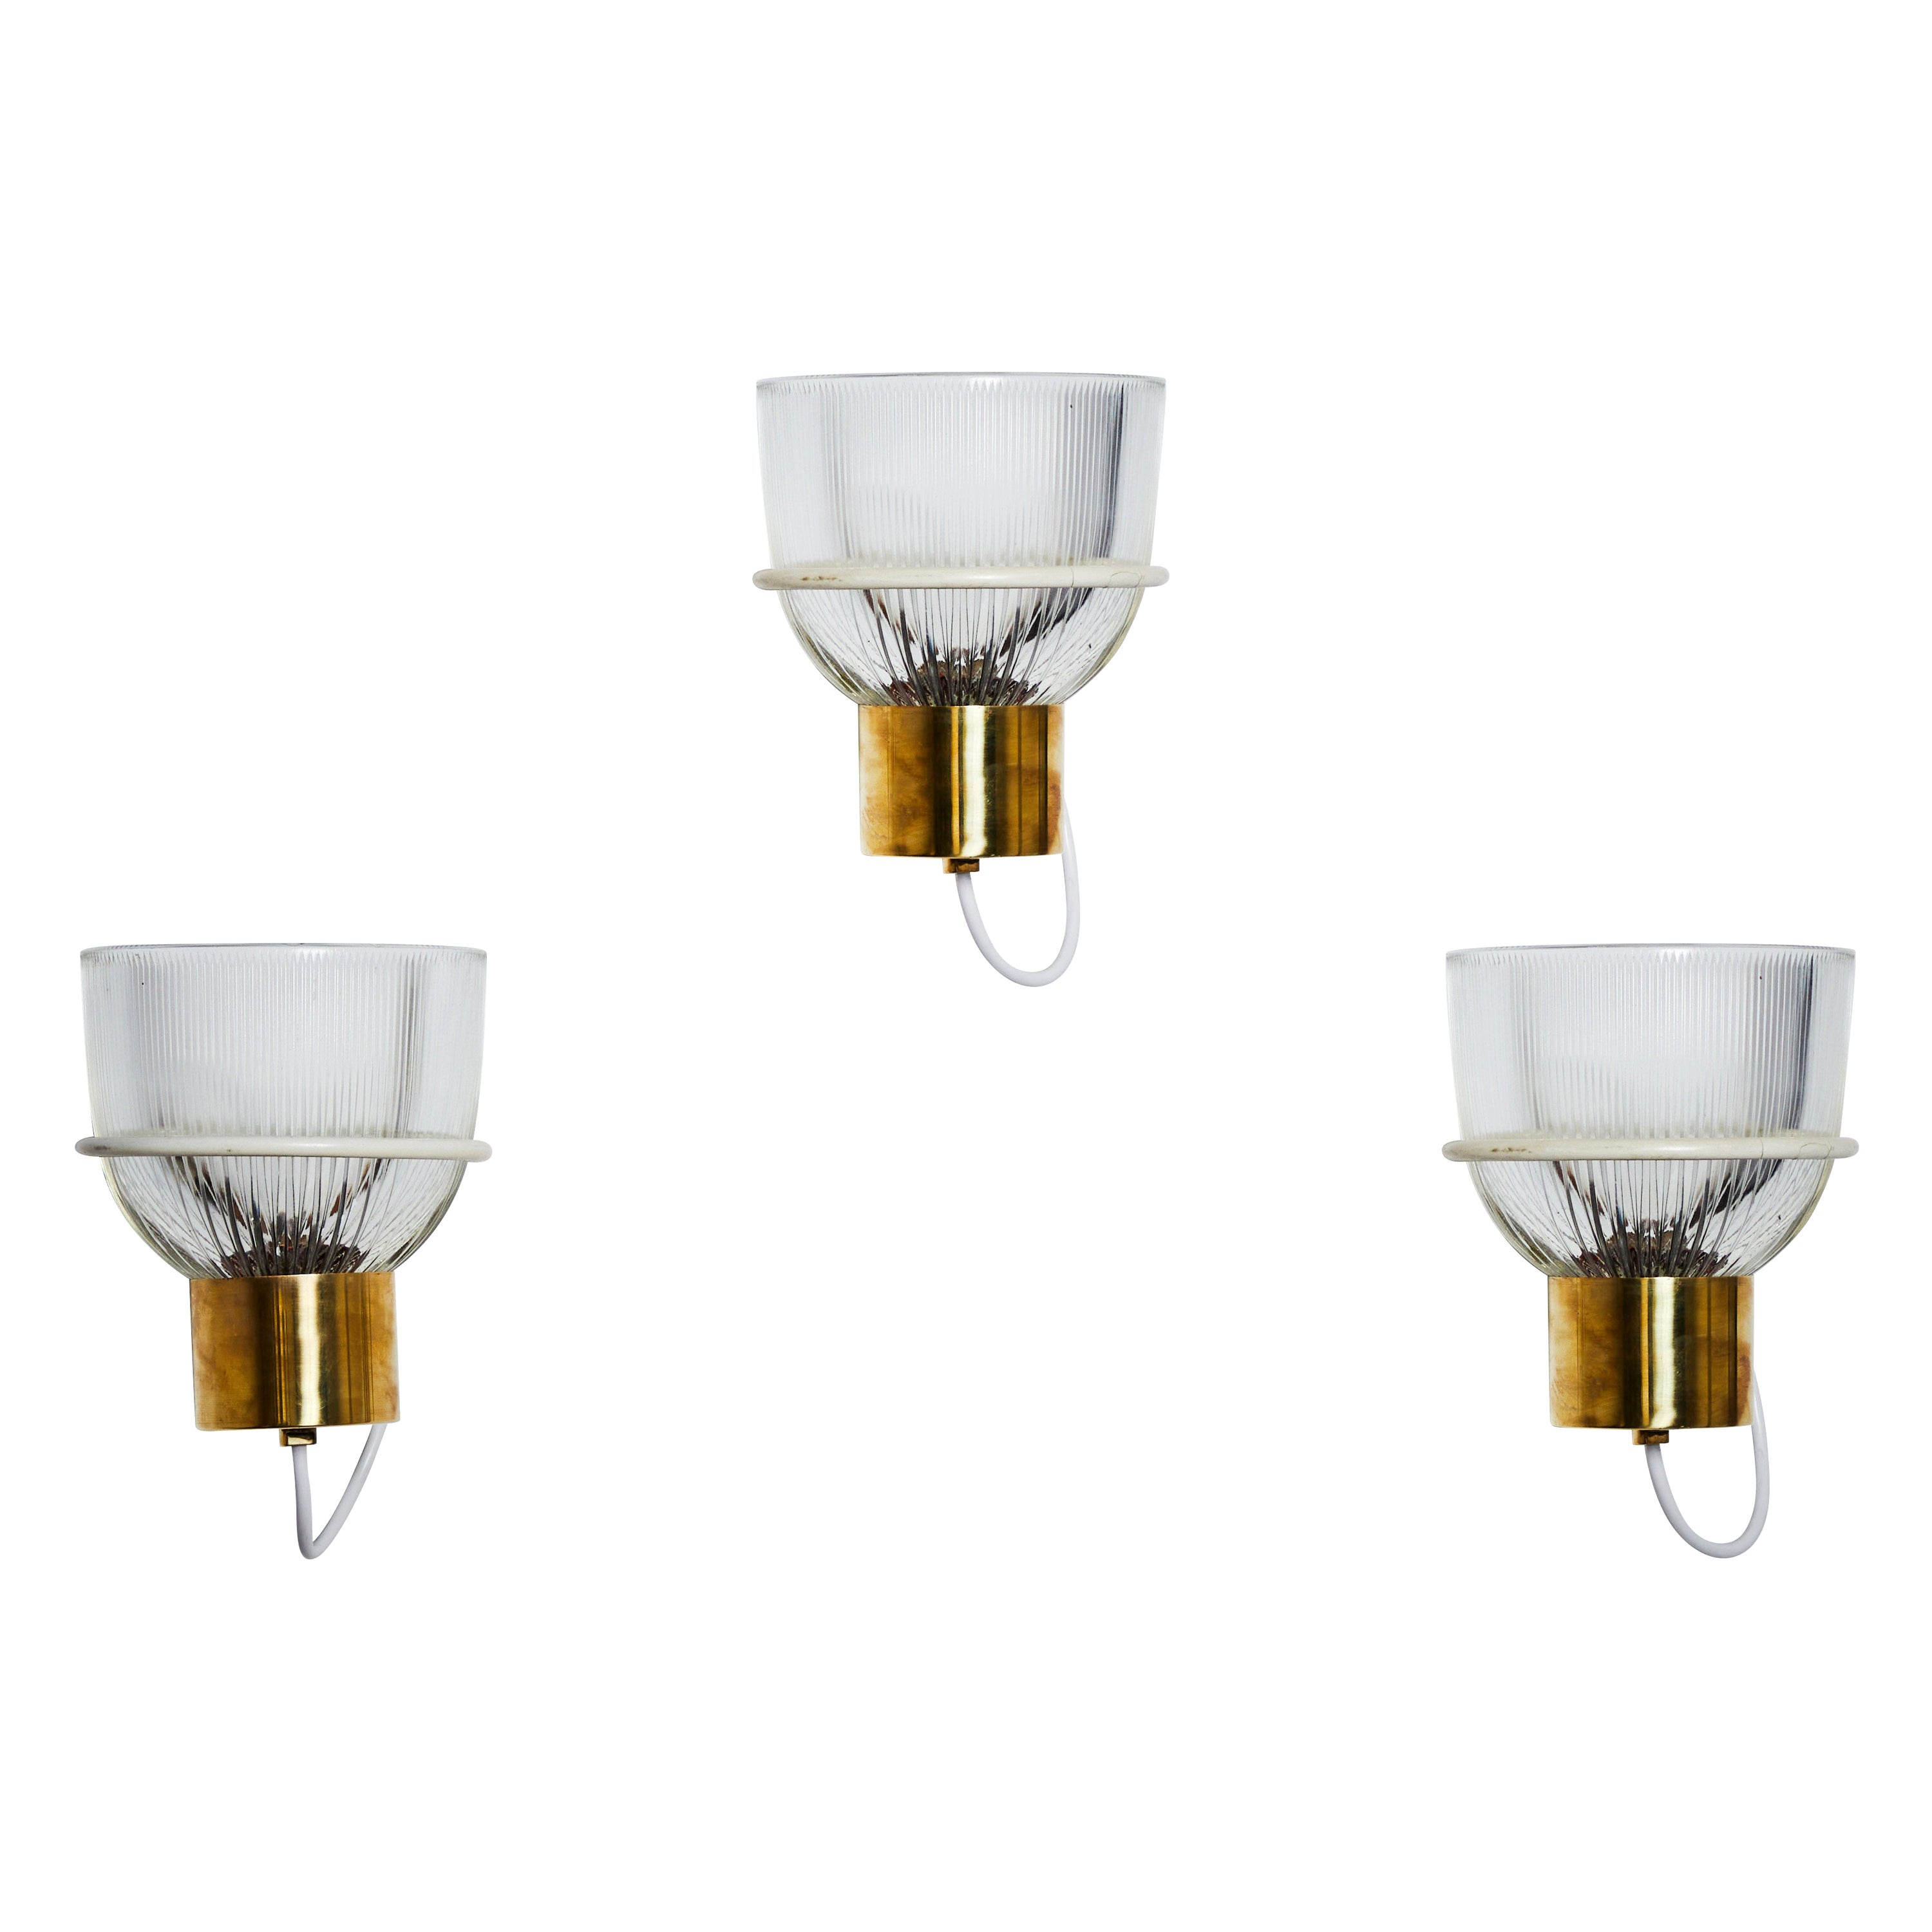 One Sconce by Sergio Asti for Candle